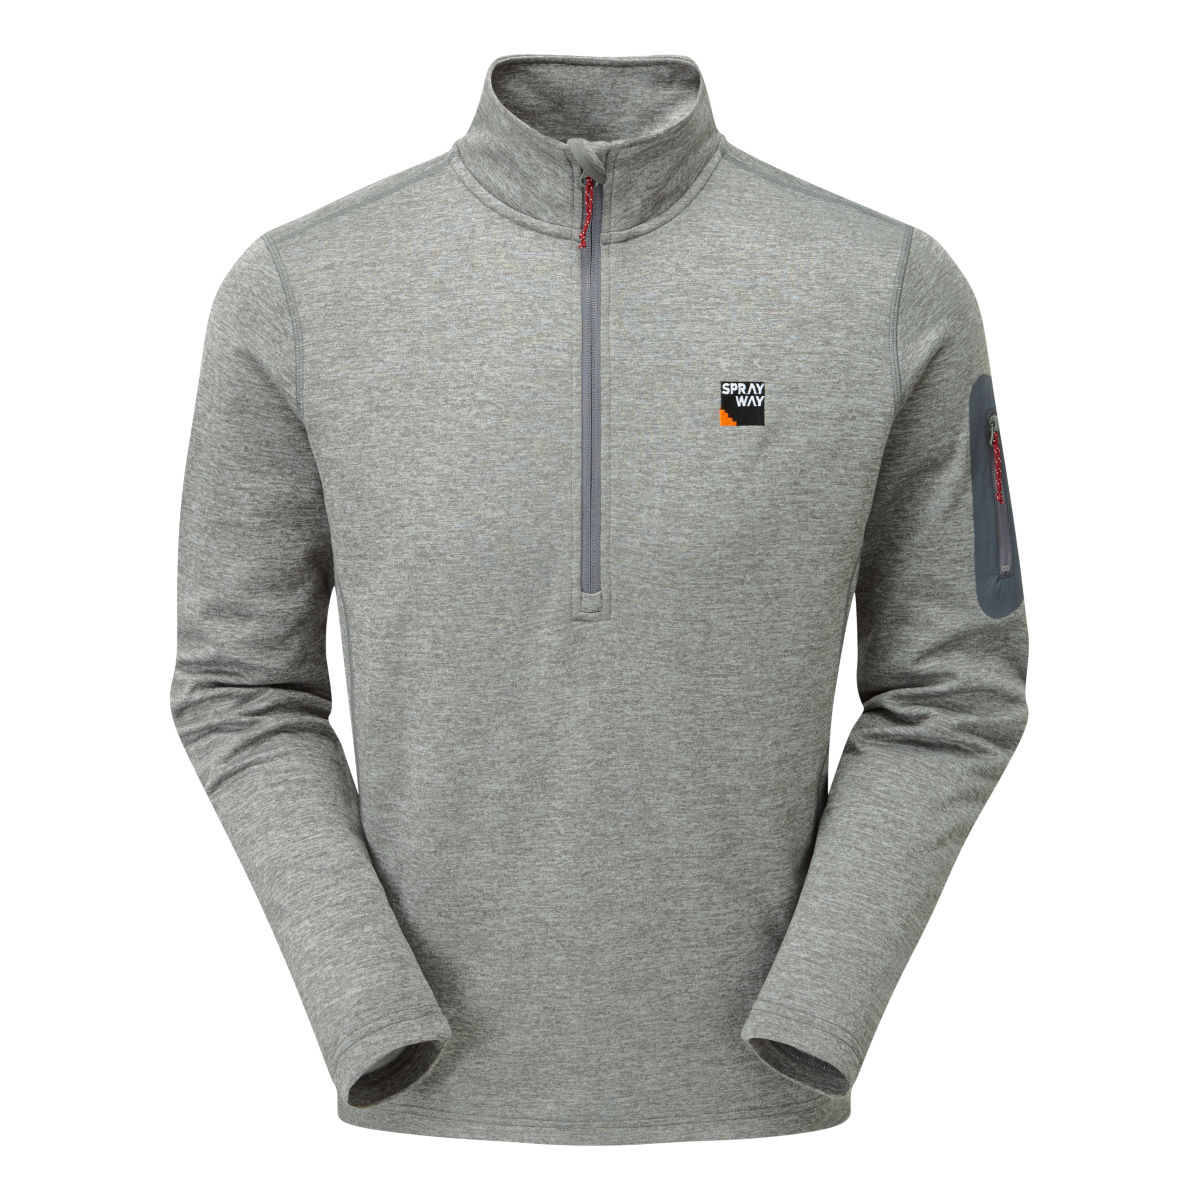 Sprayway Saul 1/2 Zip Fleece - Forros polares